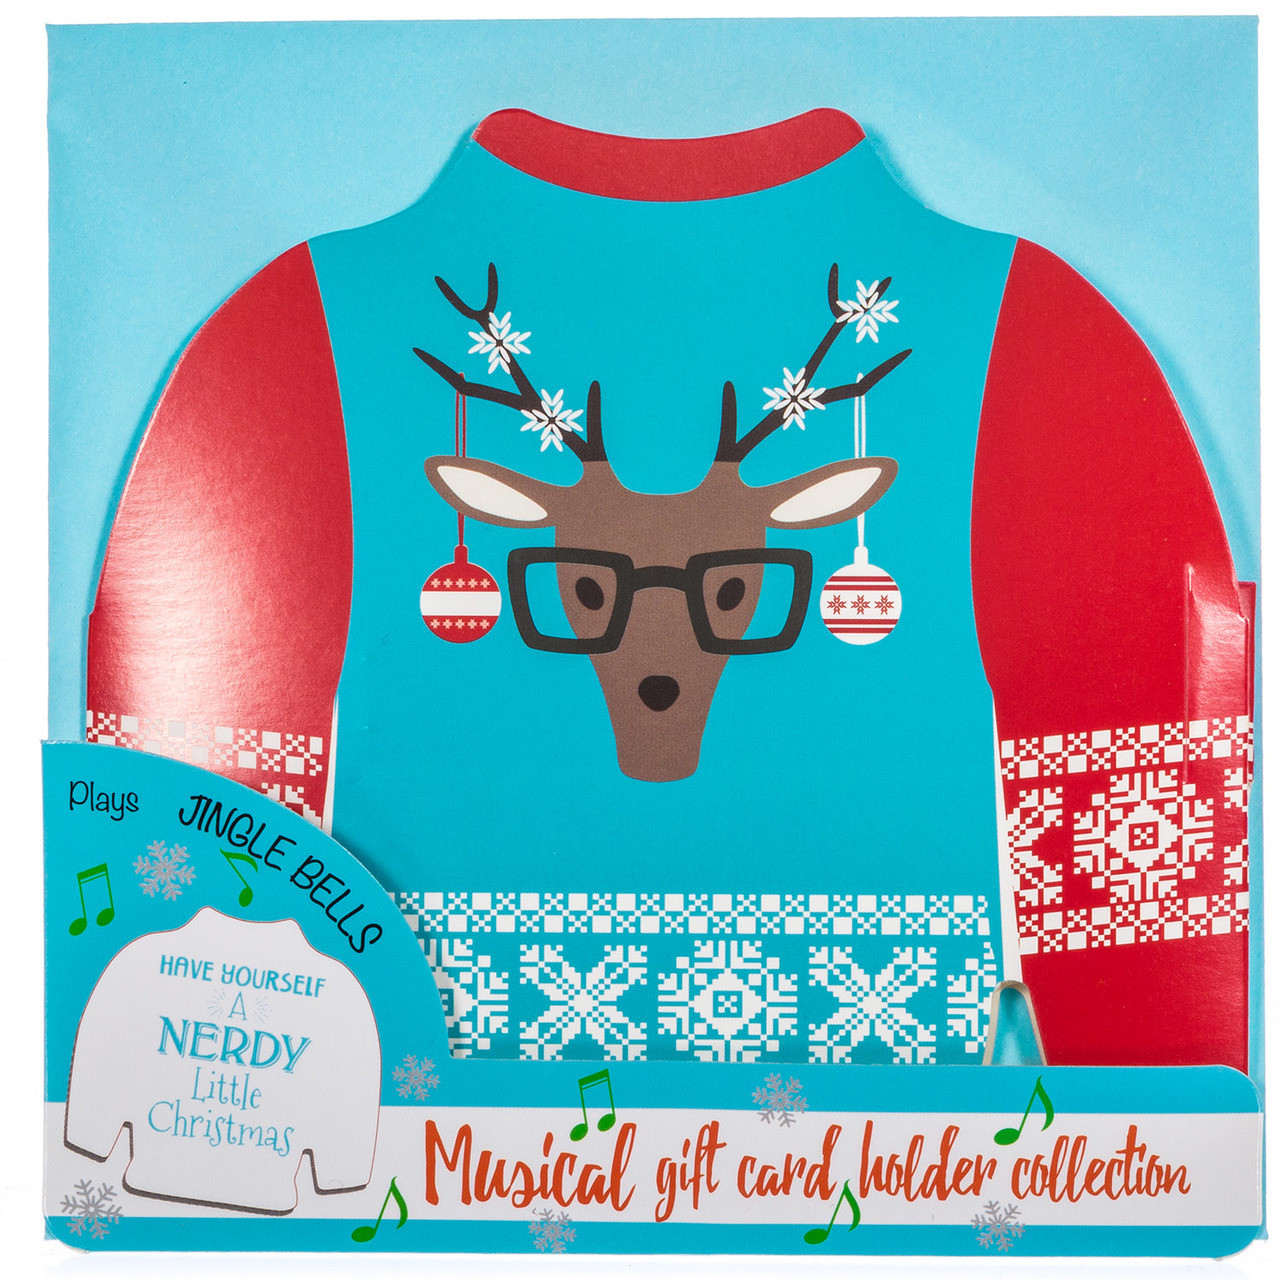 Ugly christmas sweater musical gift card holder retrofestive musical gift card holder reindeer with glasses solutioingenieria Choice Image